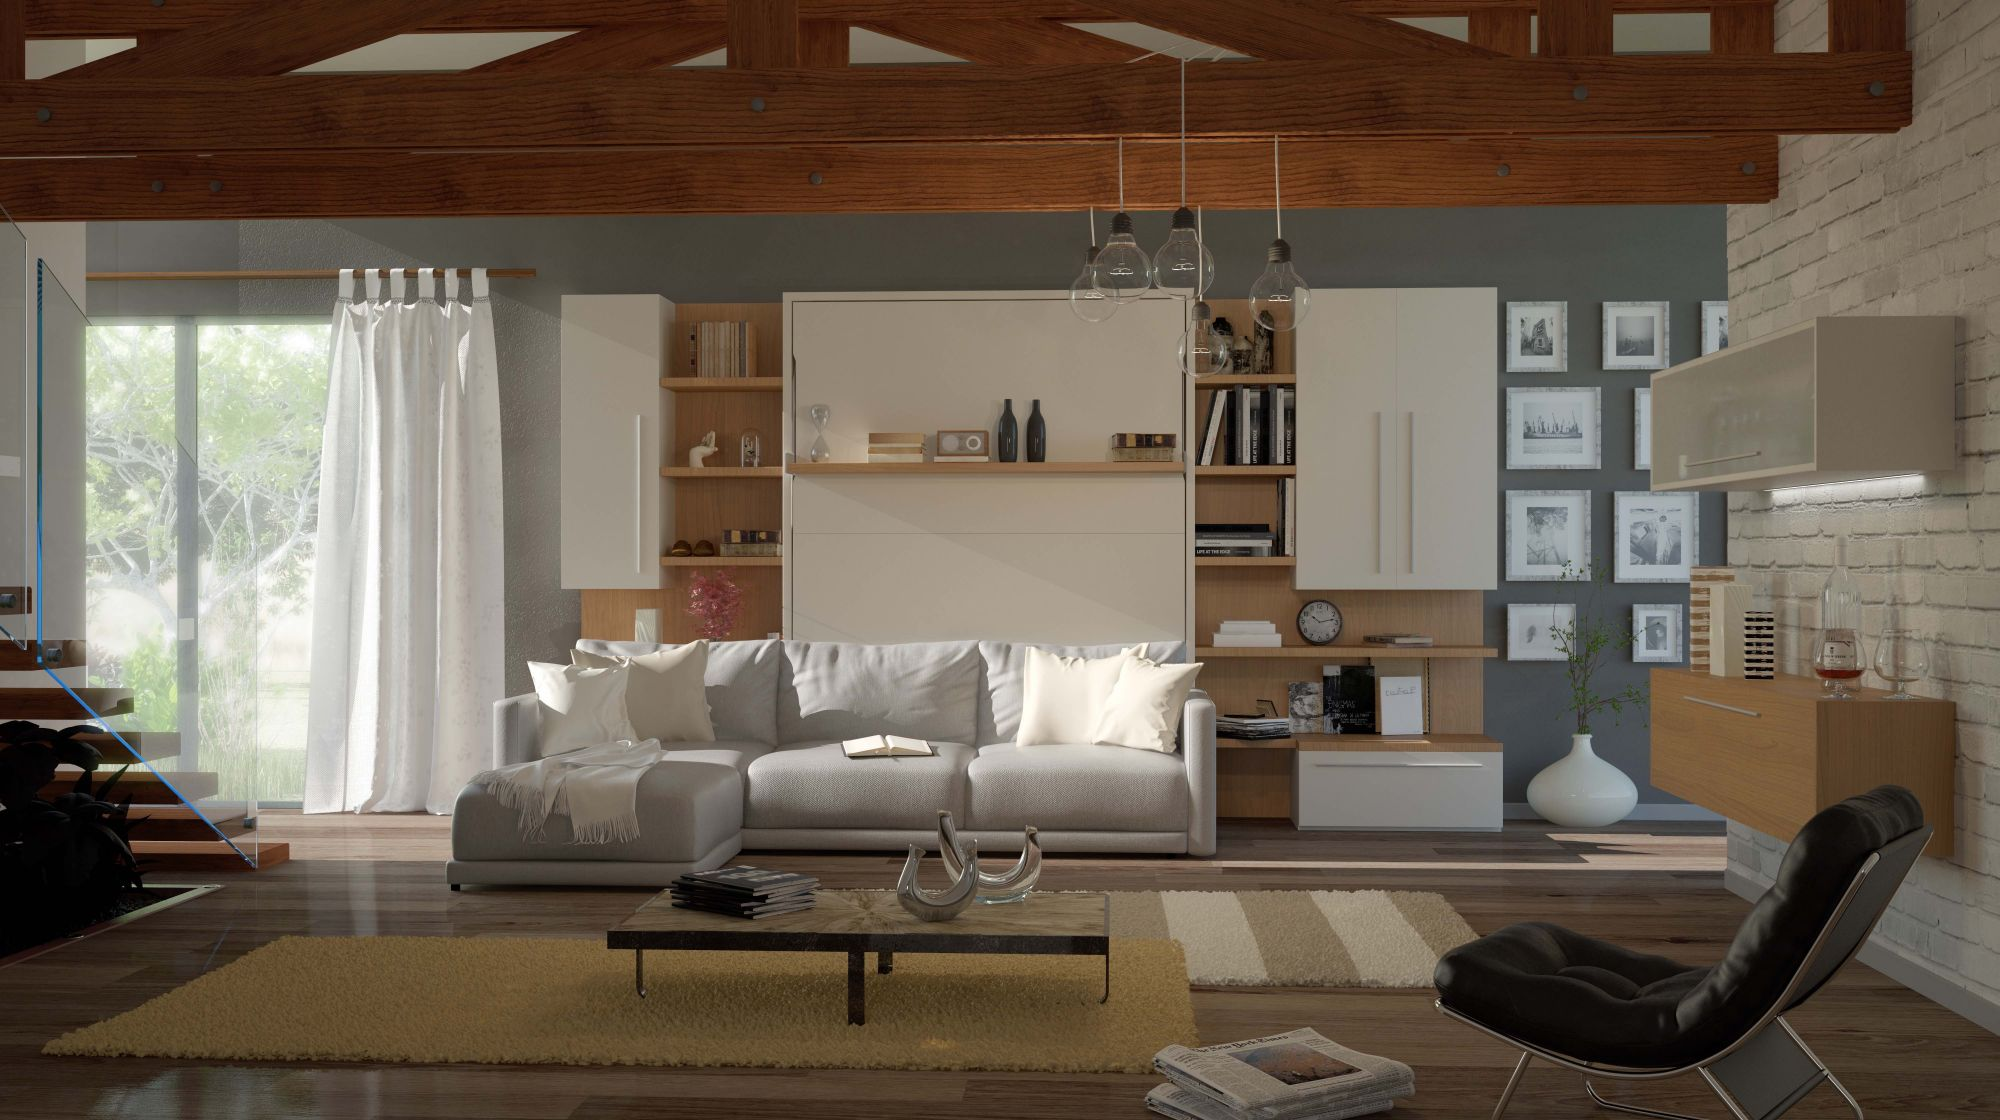 This Singapore Brand Offers Multifunctional Furniture That Helps You Save Space at Home